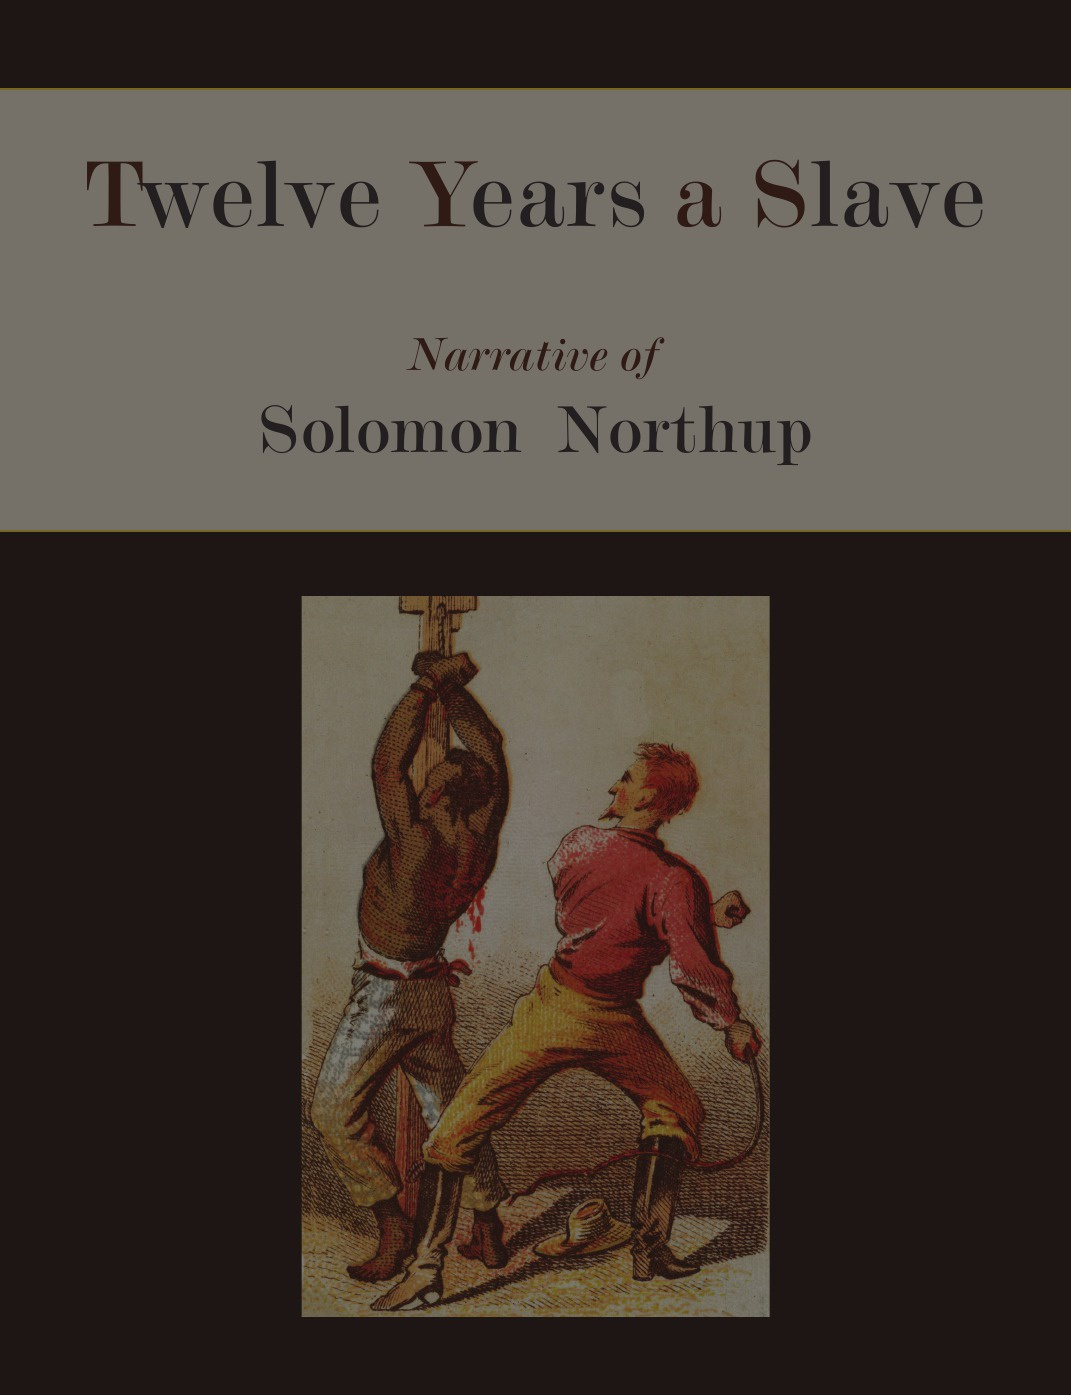 Solomon Northup Twelve Years a Slave. Narrative of Solomon Northup .Illustrated Edition. brown william wells illustrated edition of the life and escape of wm wells brown from american slavery